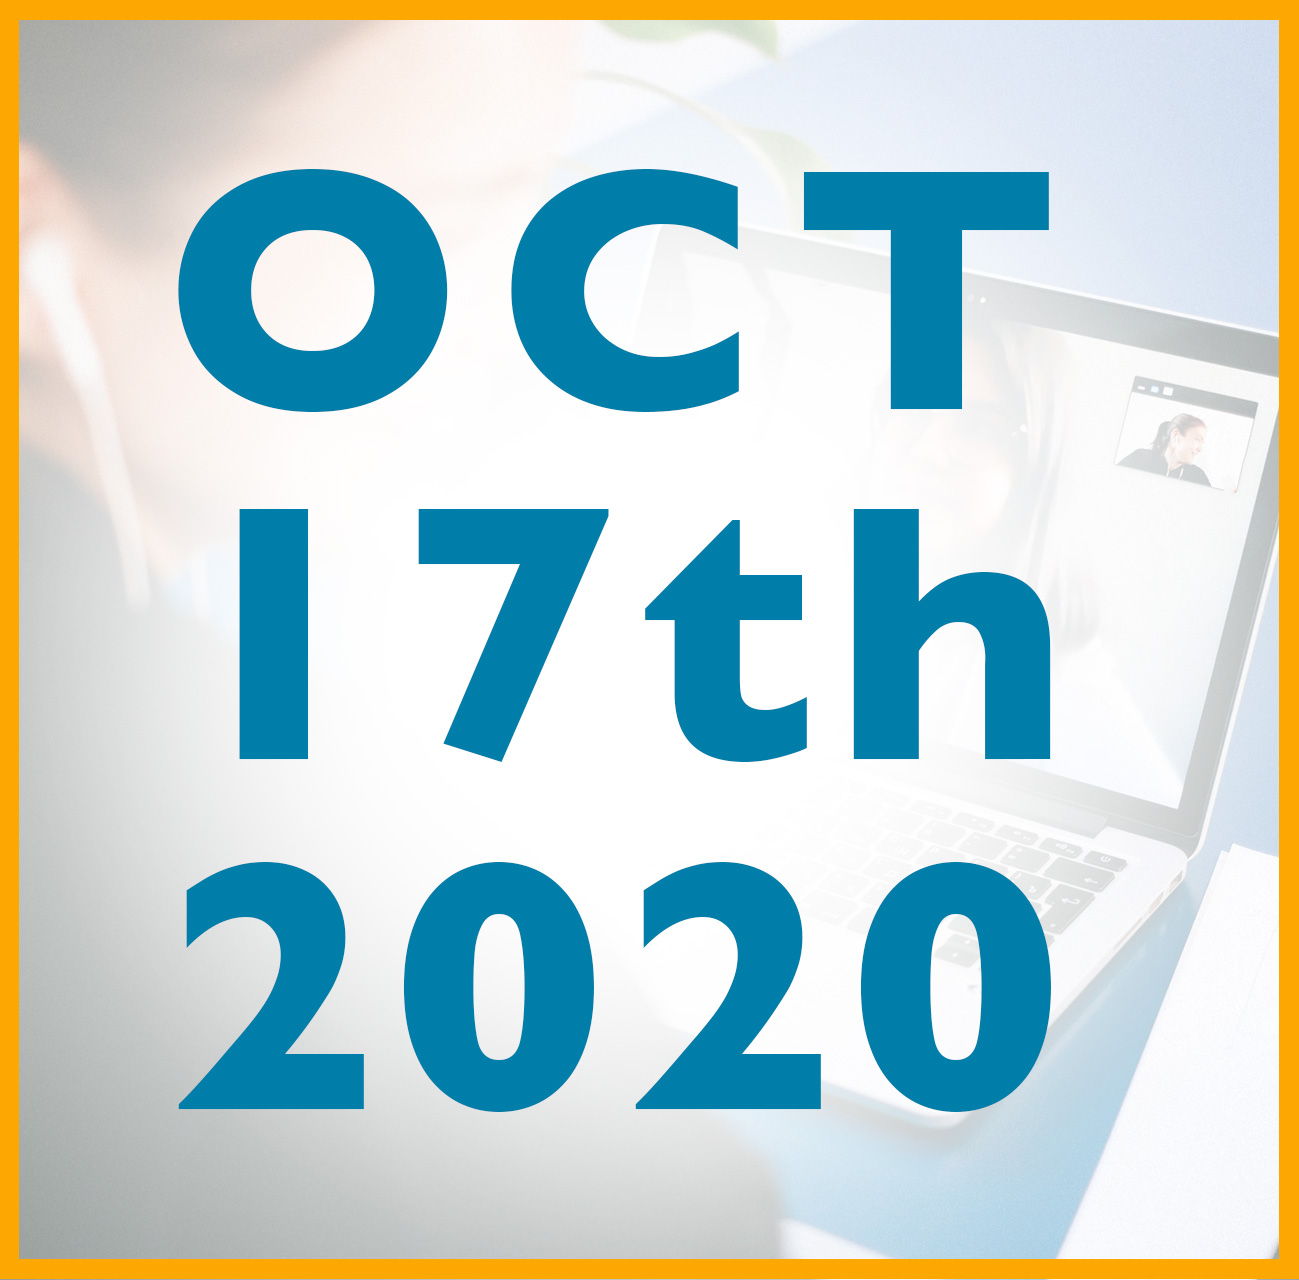 The Iowa and Nebraska Conferences will be having a joint annual meeting on October 17th, 2020